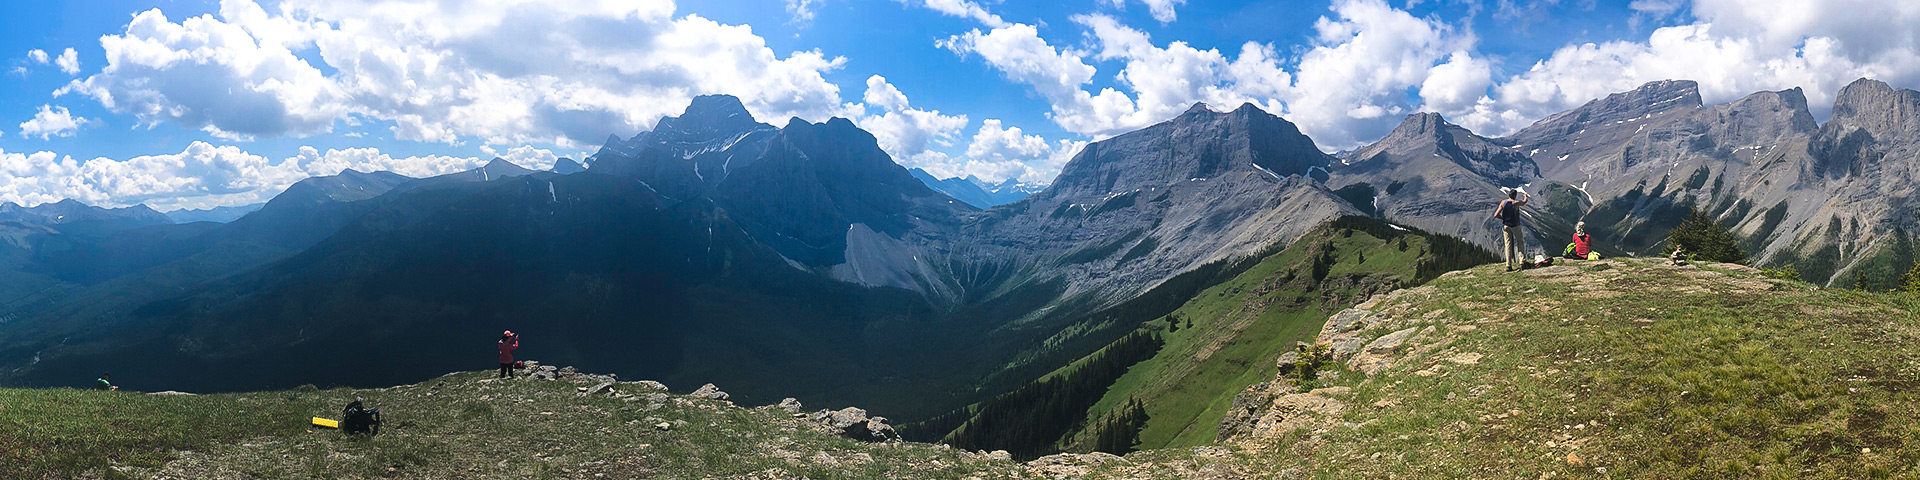 Panorama of the Wind Ridge hike in Canmore, the Canadian Rockies